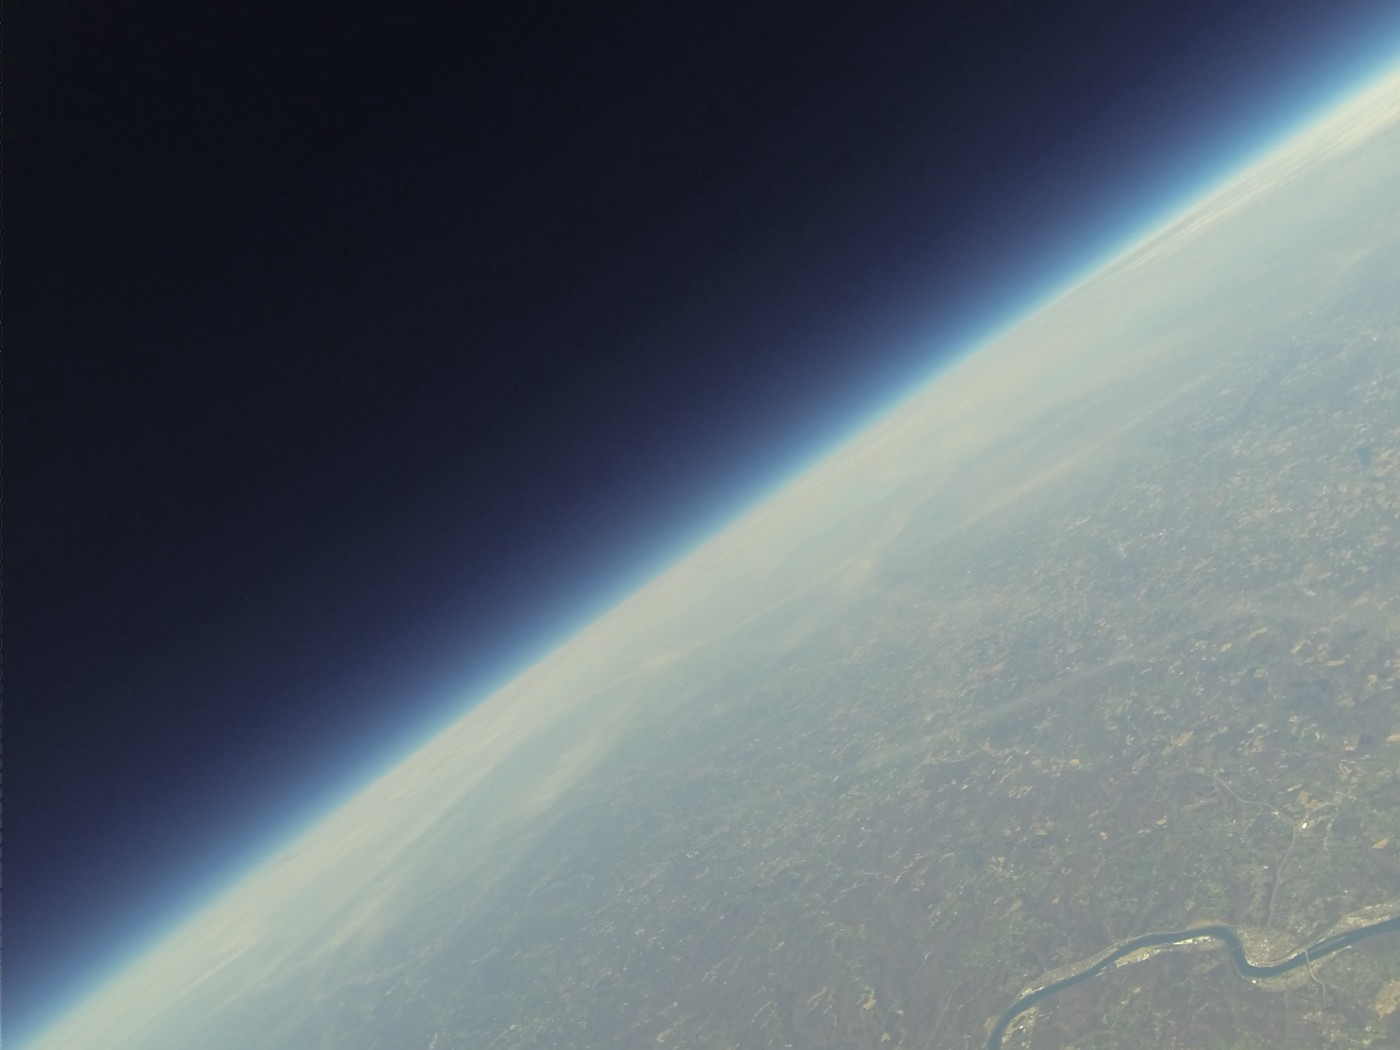 Using Planet Imagery for Position Determination of a Weather Balloon